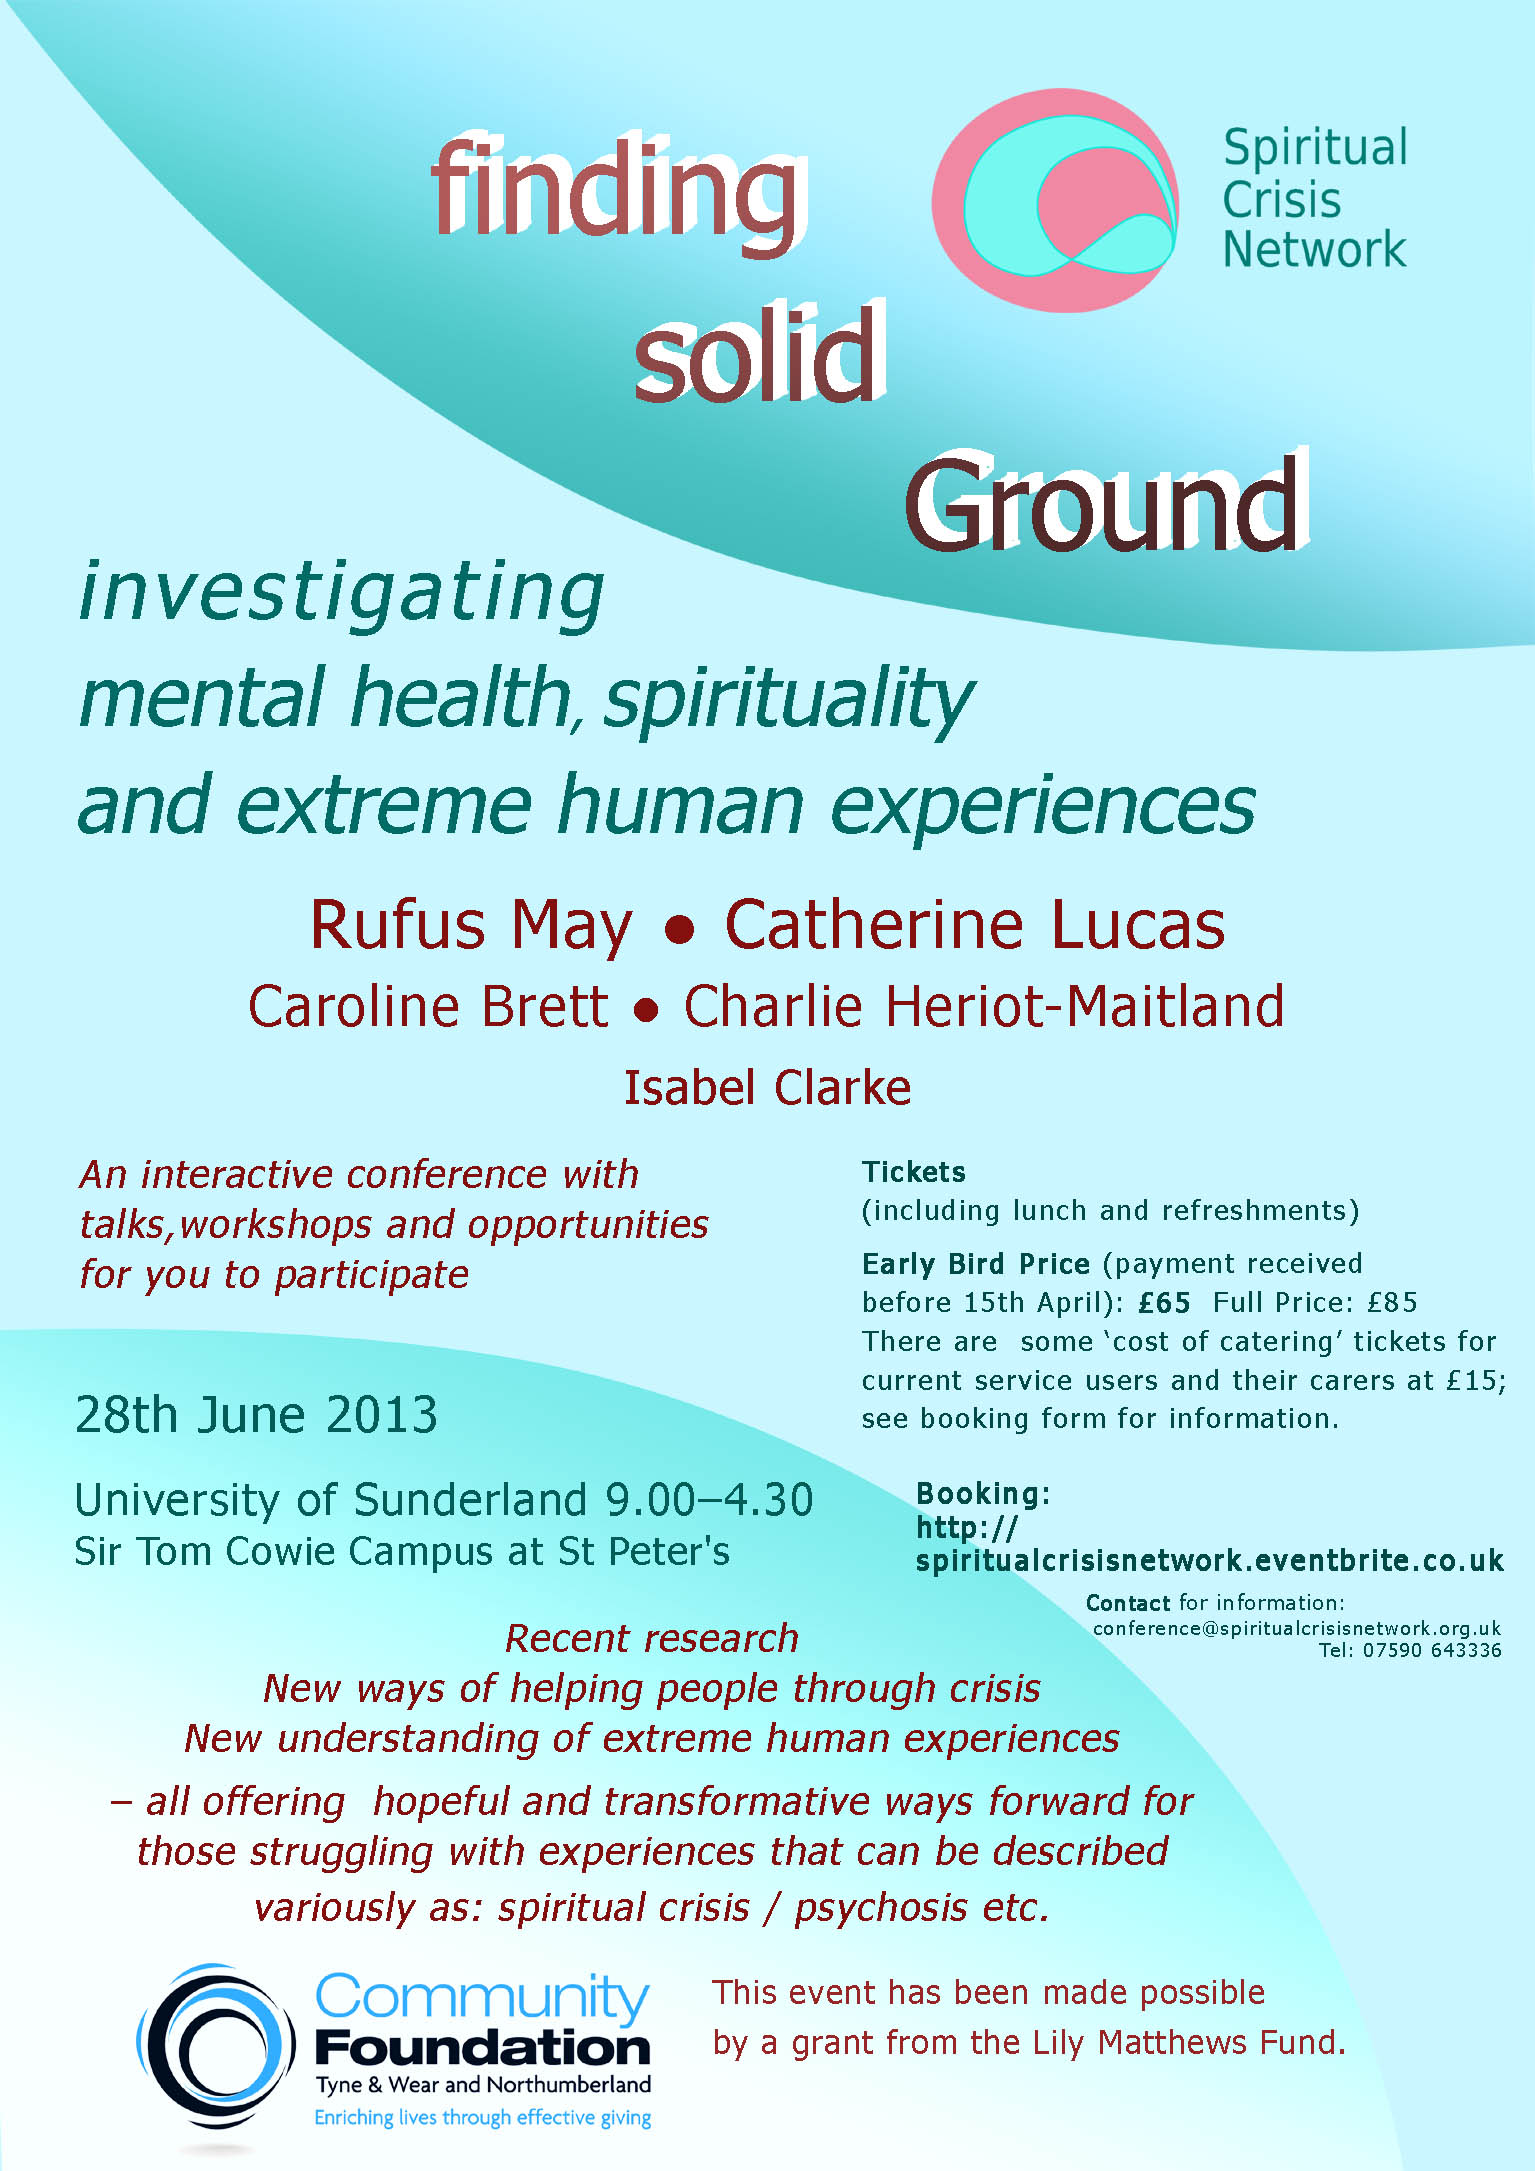 Finding Solid Ground Conference Flyer (2)